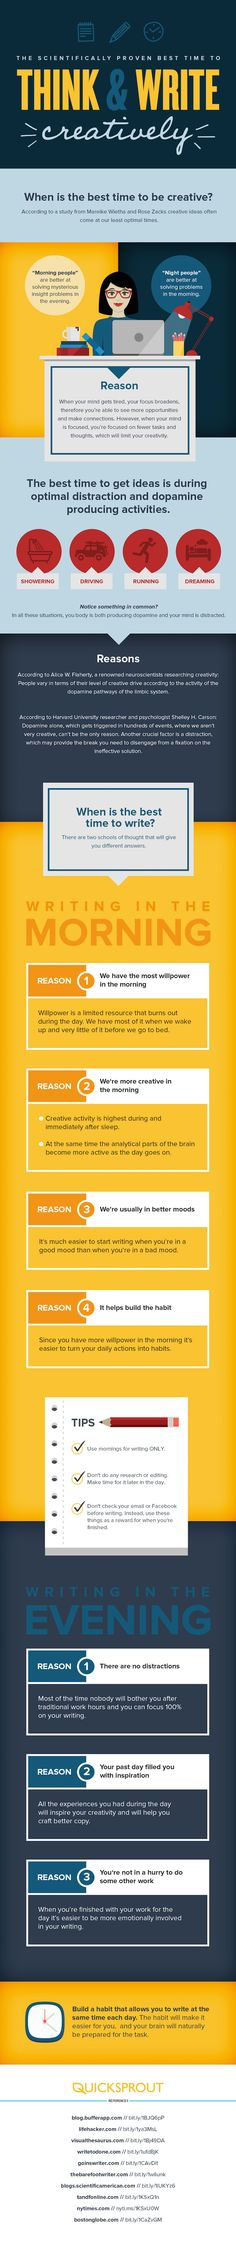 The Scientifically Proven Best Time to Think/Write Creatively [#INFOGRAPHIC]